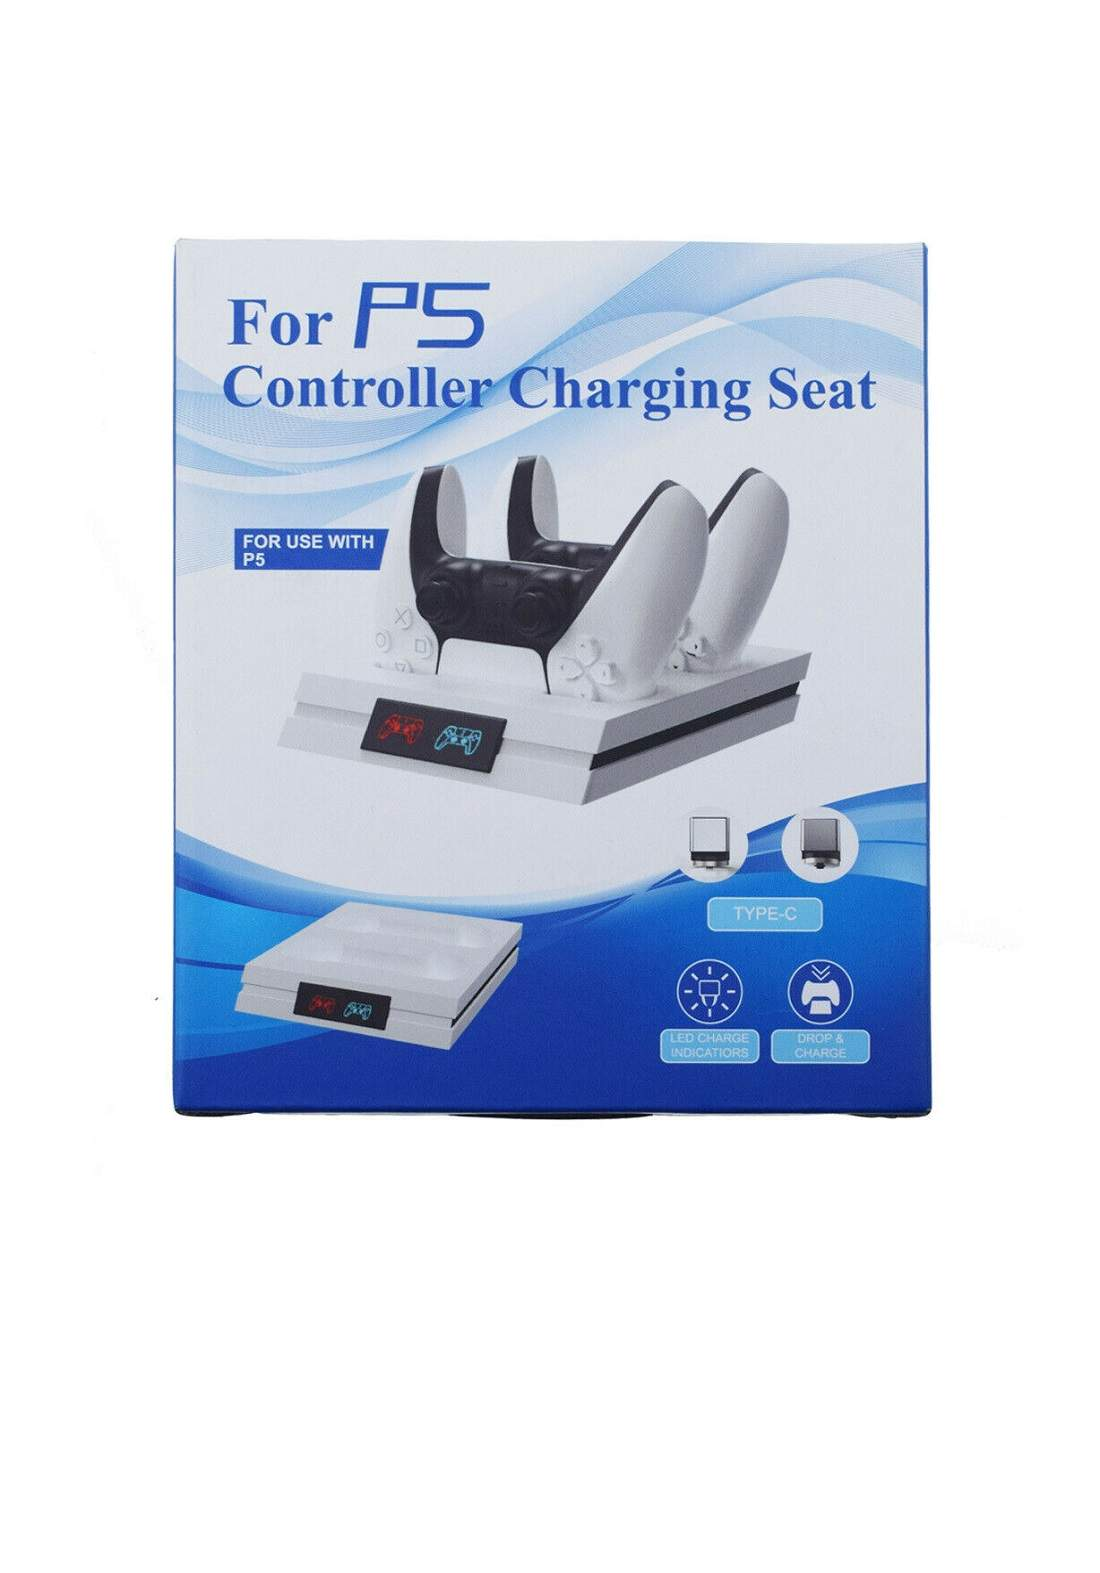 Controller Charging Seat For PS5 - White ستاند شاحن لوحدات التحكم